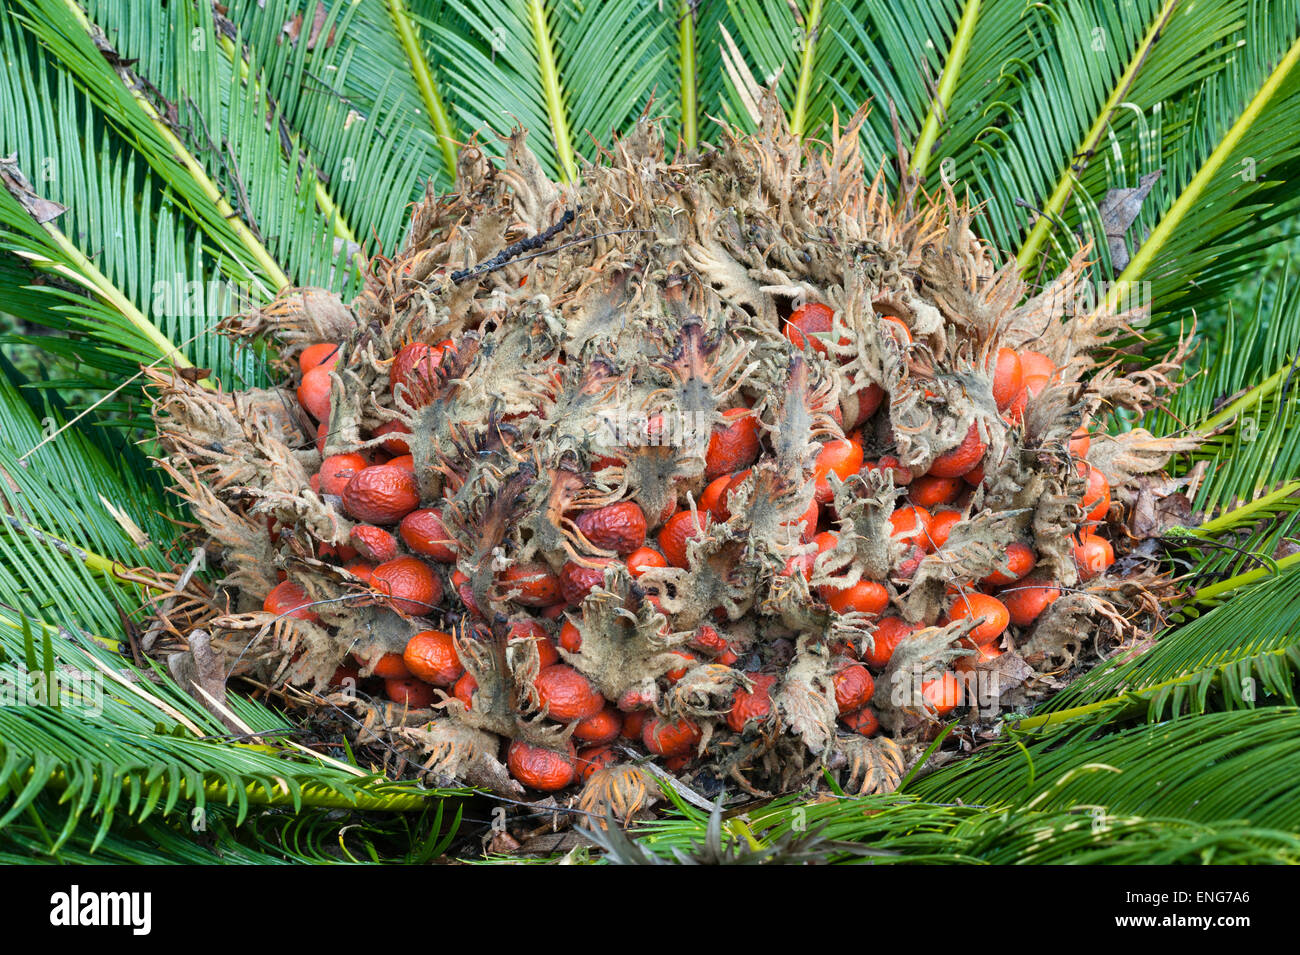 The gardens of Il Biviere, Catania, Sicily, Italy. The toxic seeds of a cycad (cycas revoluta) - Stock Image